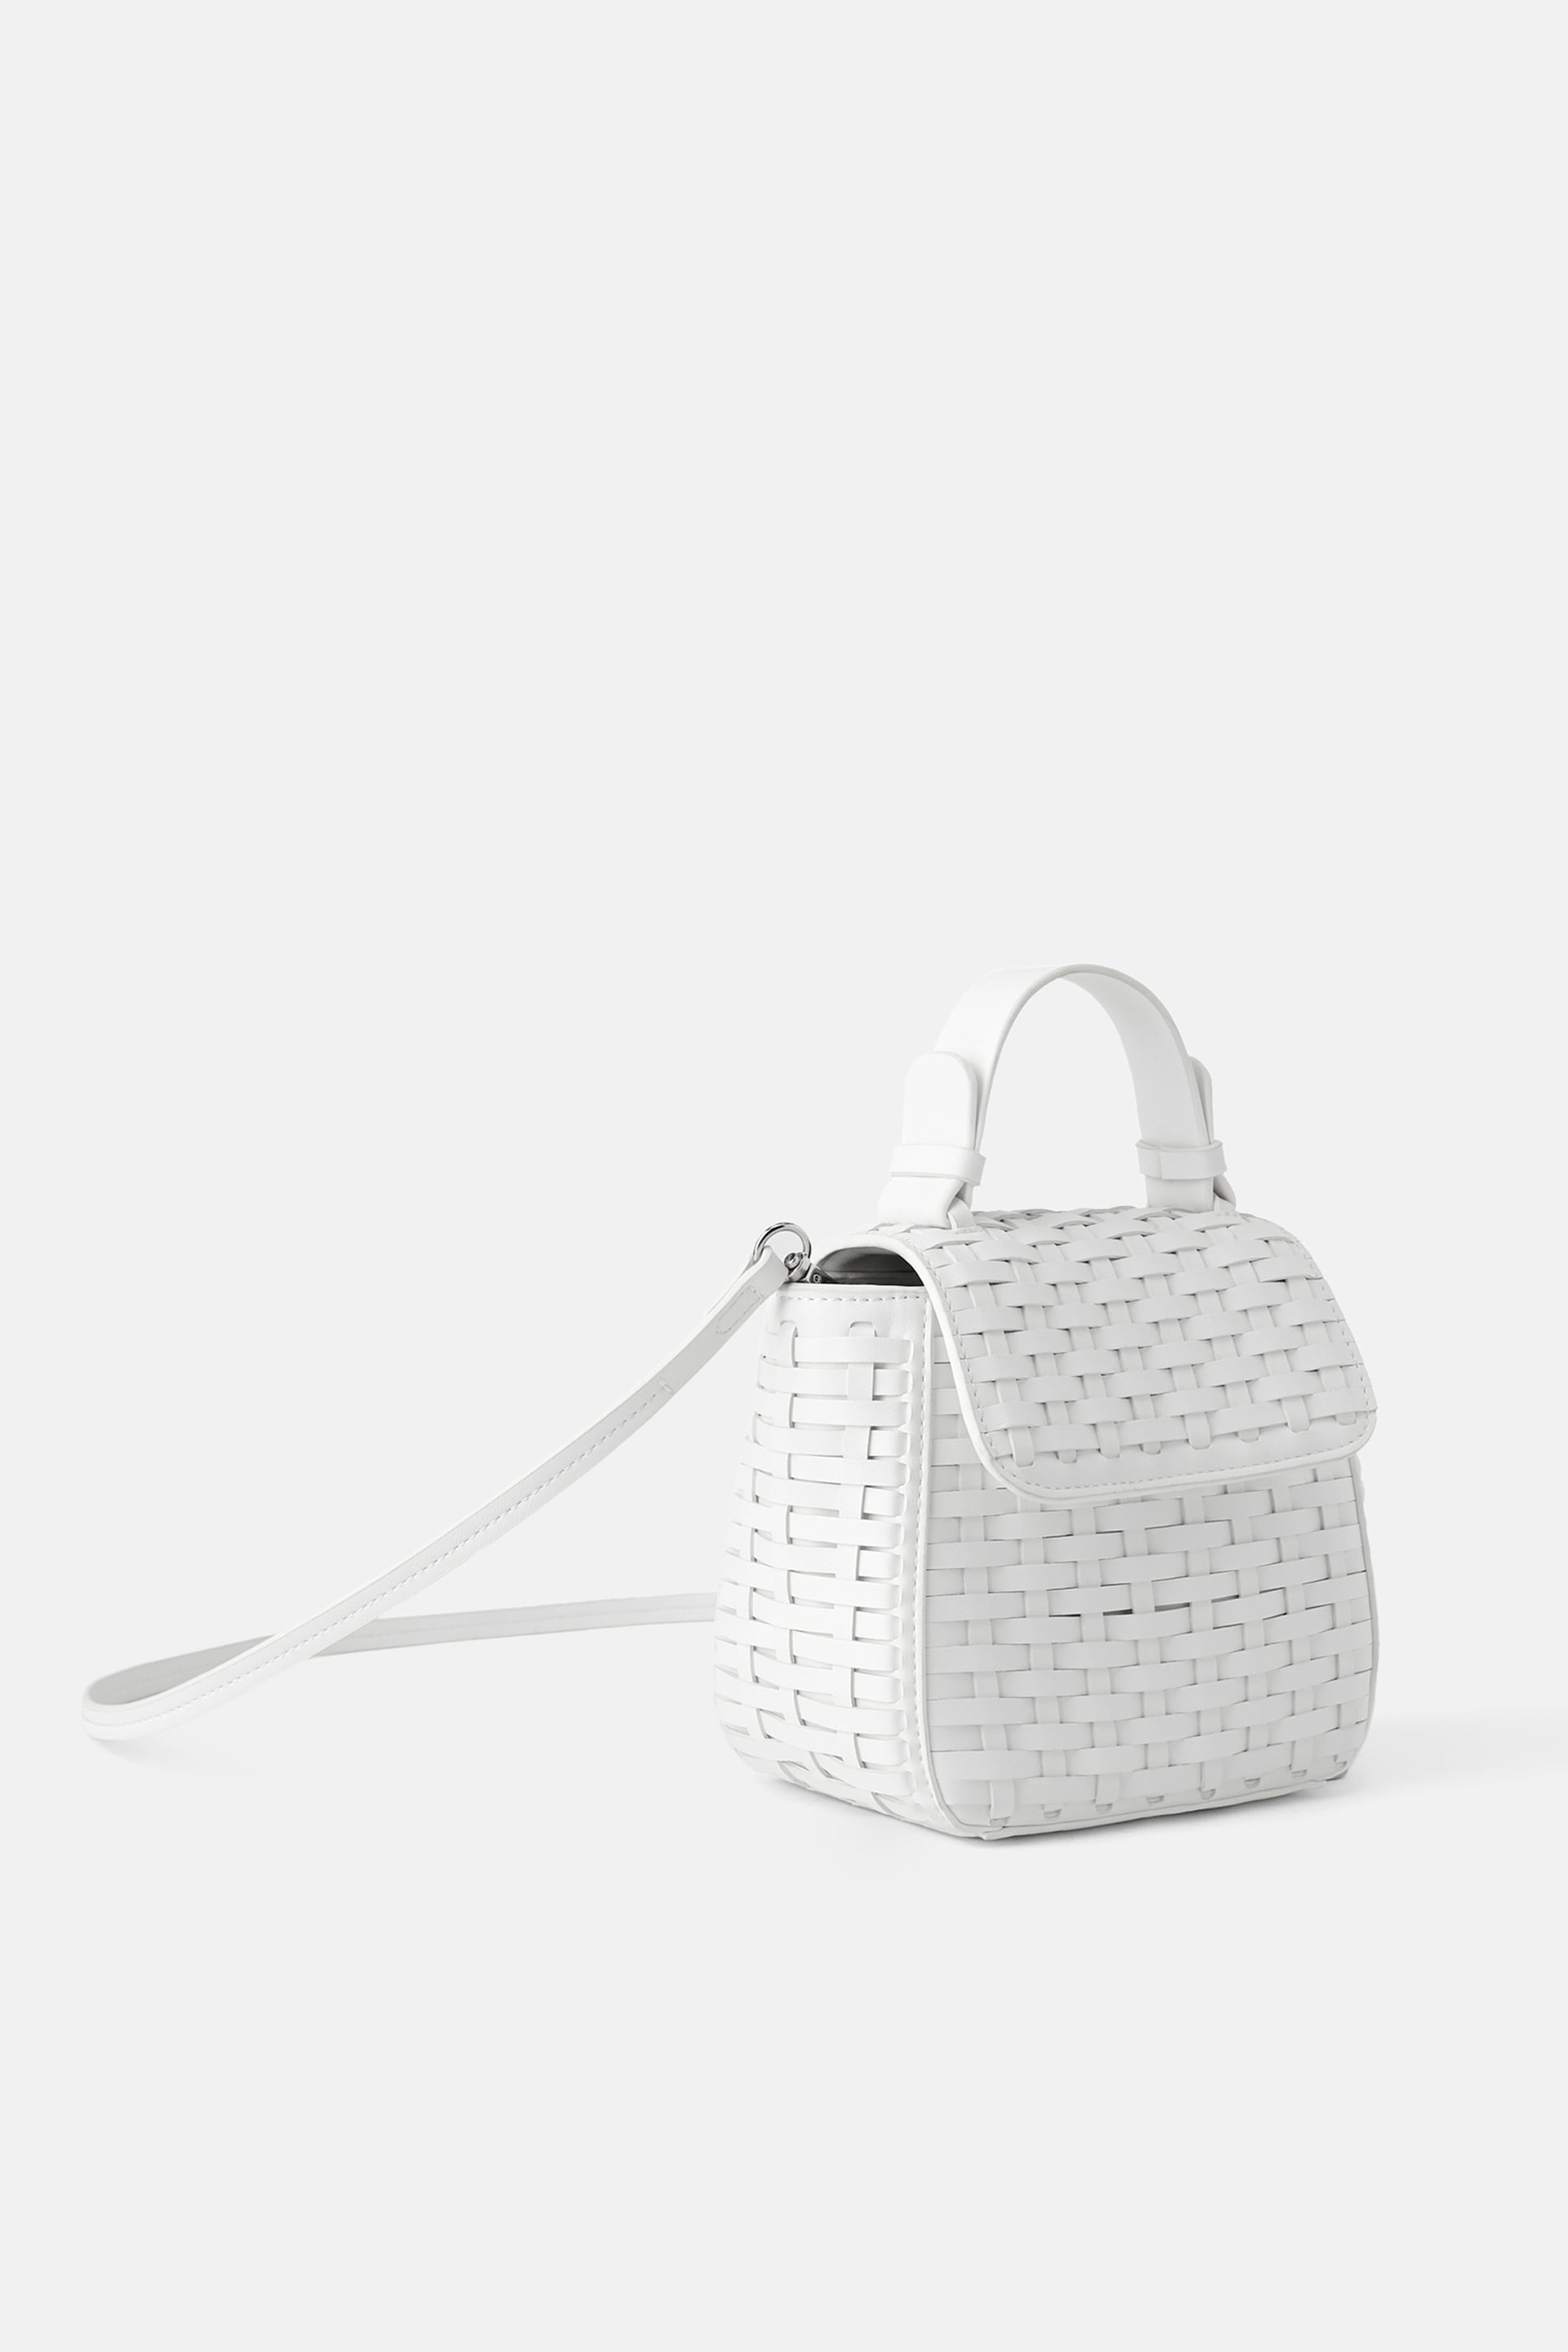 Copy of Copy of ZARA WOVEN MINI CITY BAG